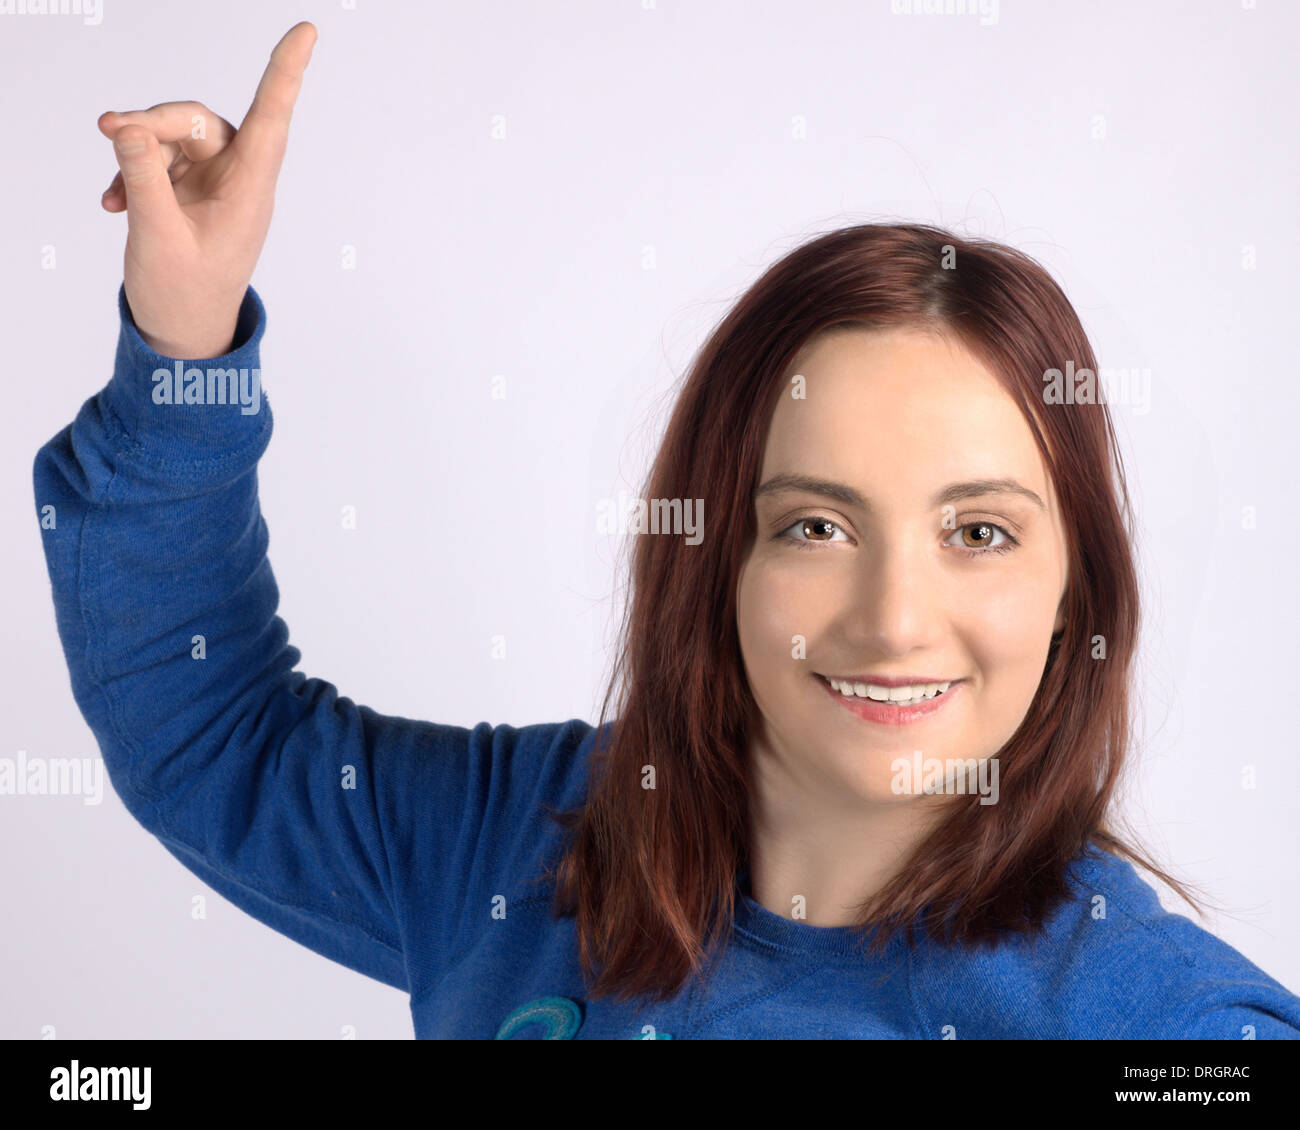 young girl pointing with finger - Stock Image